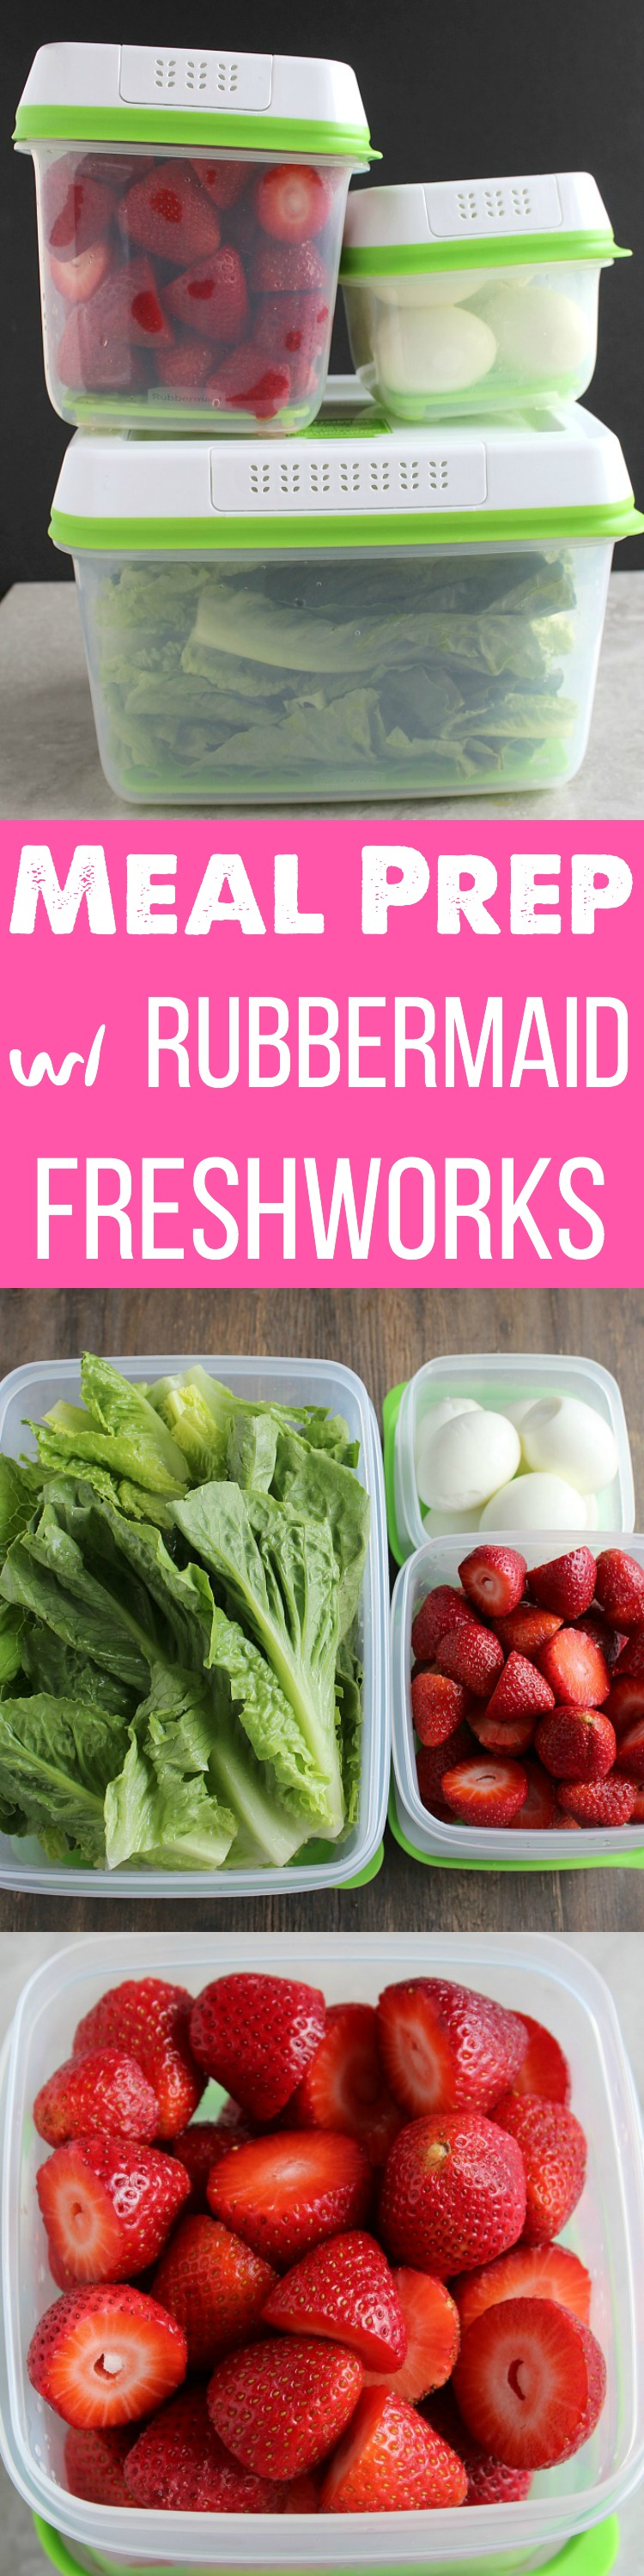 Meal Prep like a pro with Rubbermaid FreshWorks containers! Check out my simple tips! via @DashOfEvans